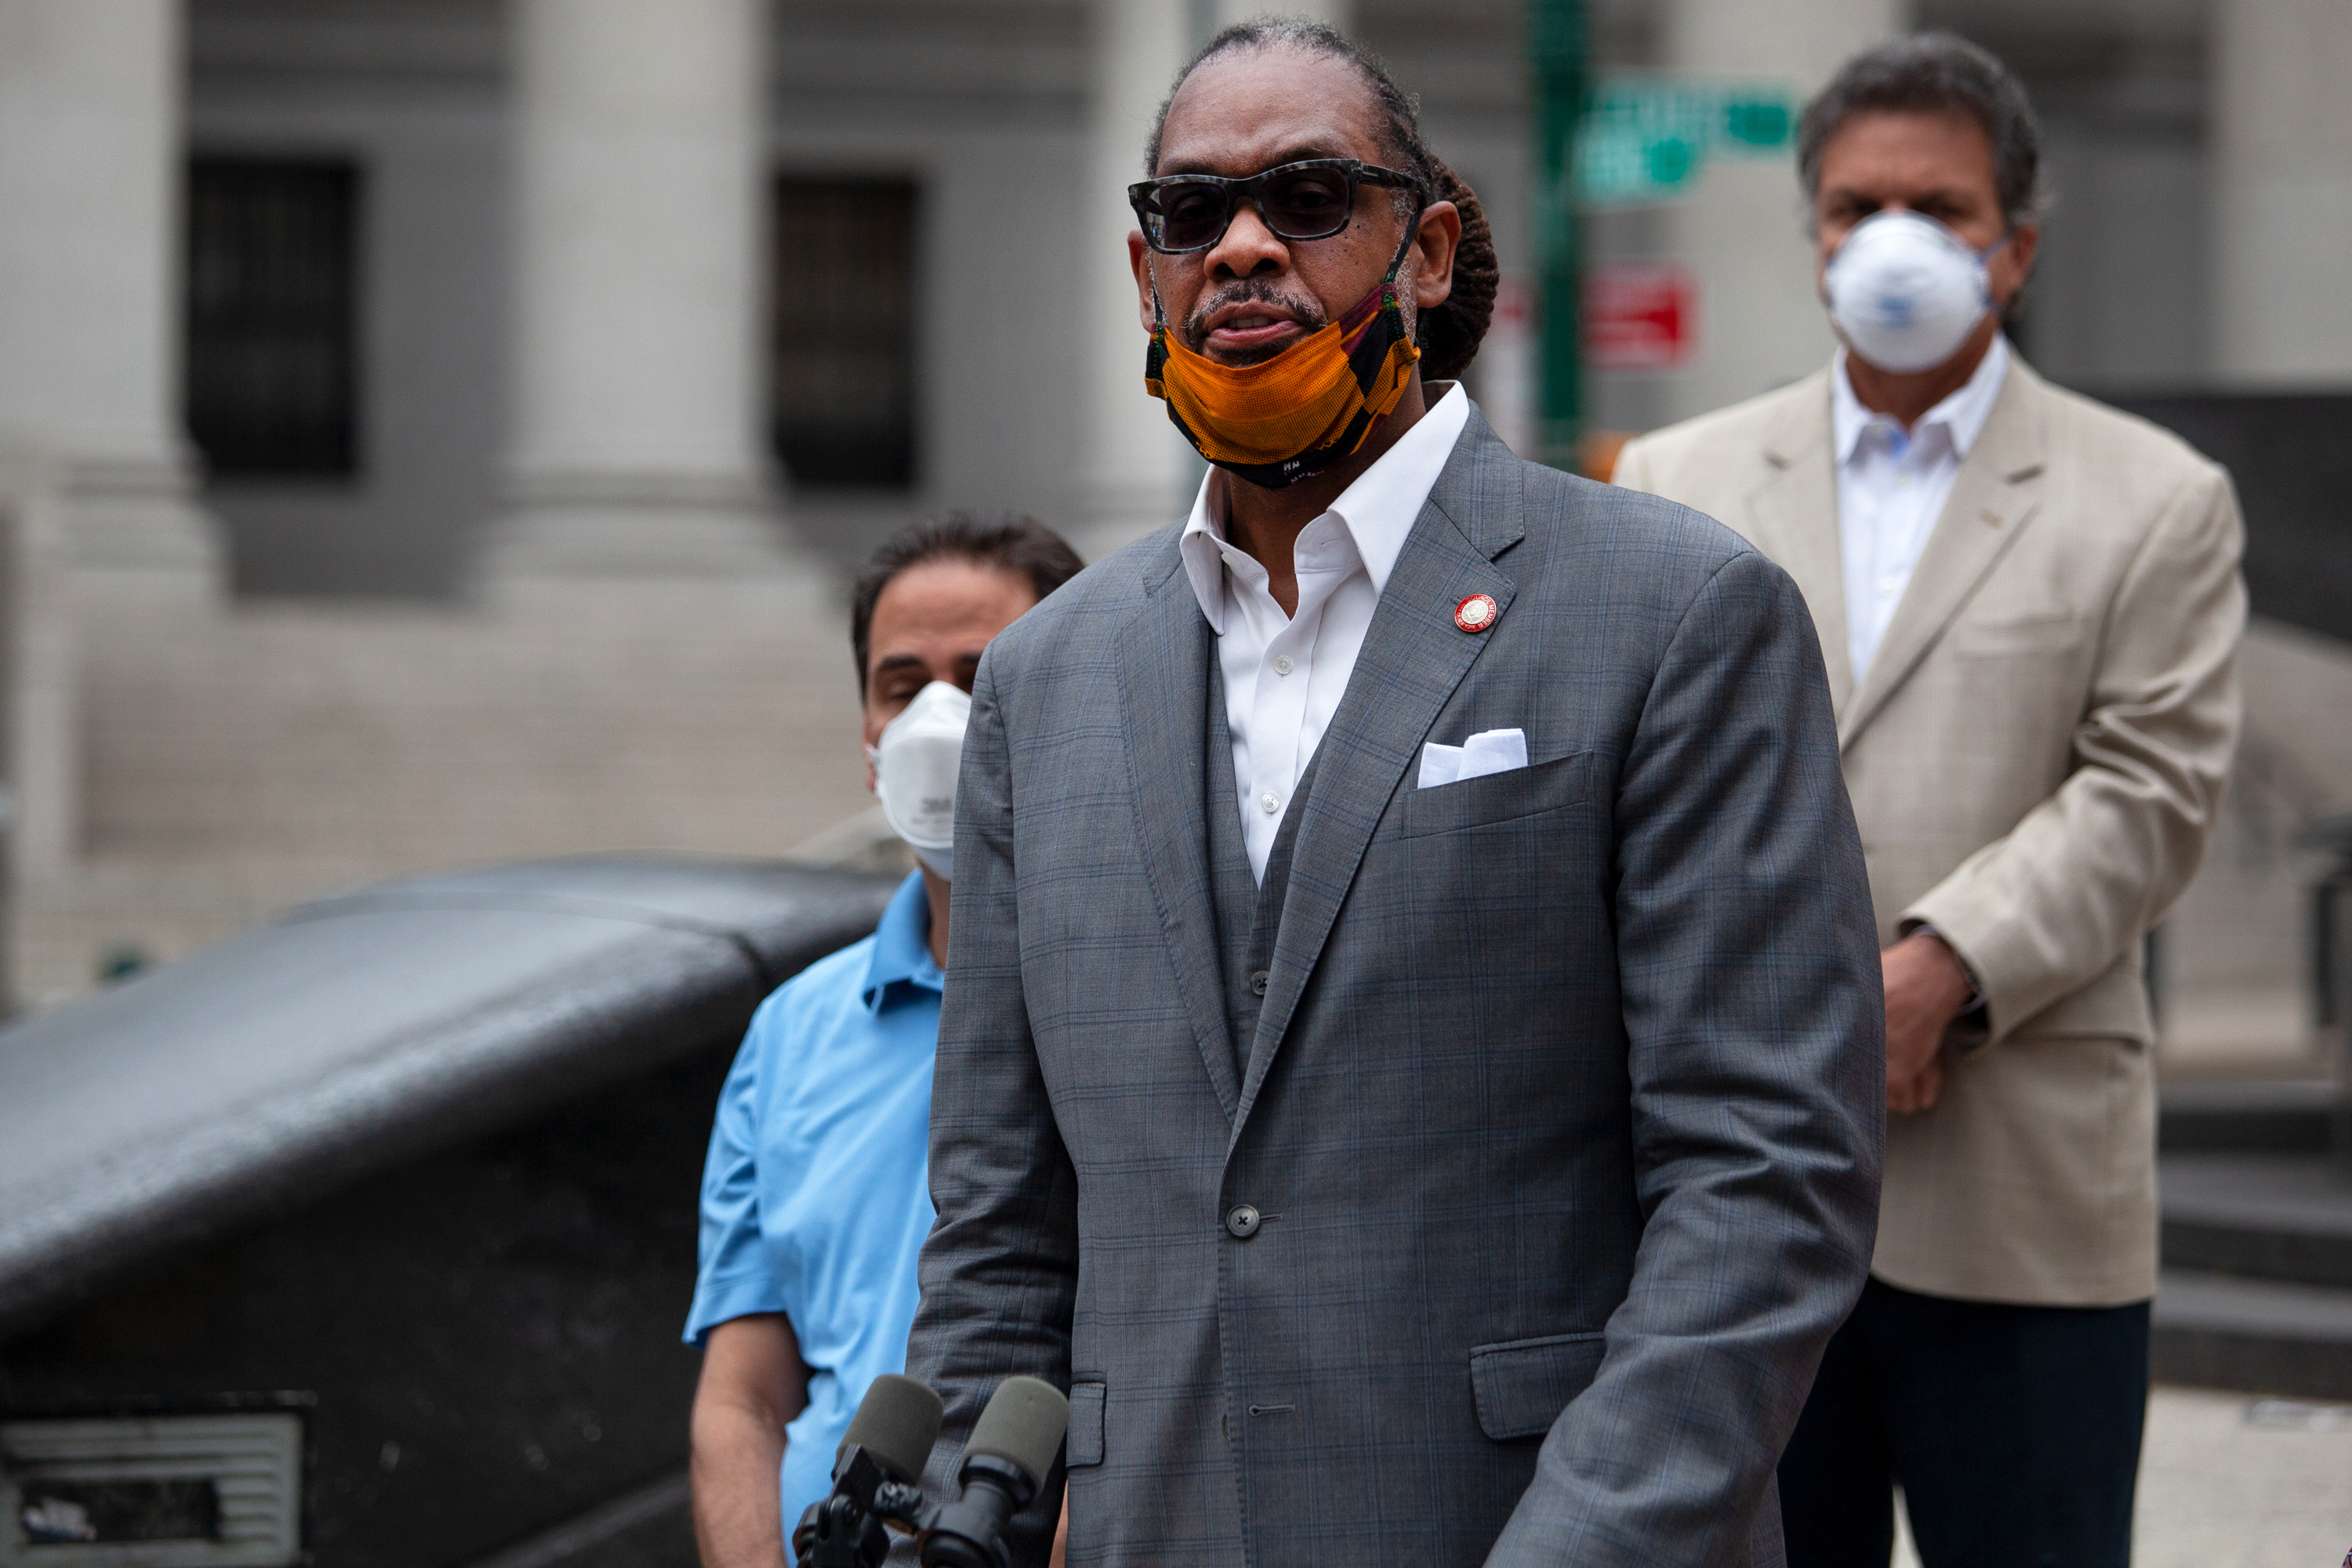 Councilmember Robert Cornegy (D-Brooklyn) calls for greater police accountability during a press conference in Foley Square, June 2, 2020.